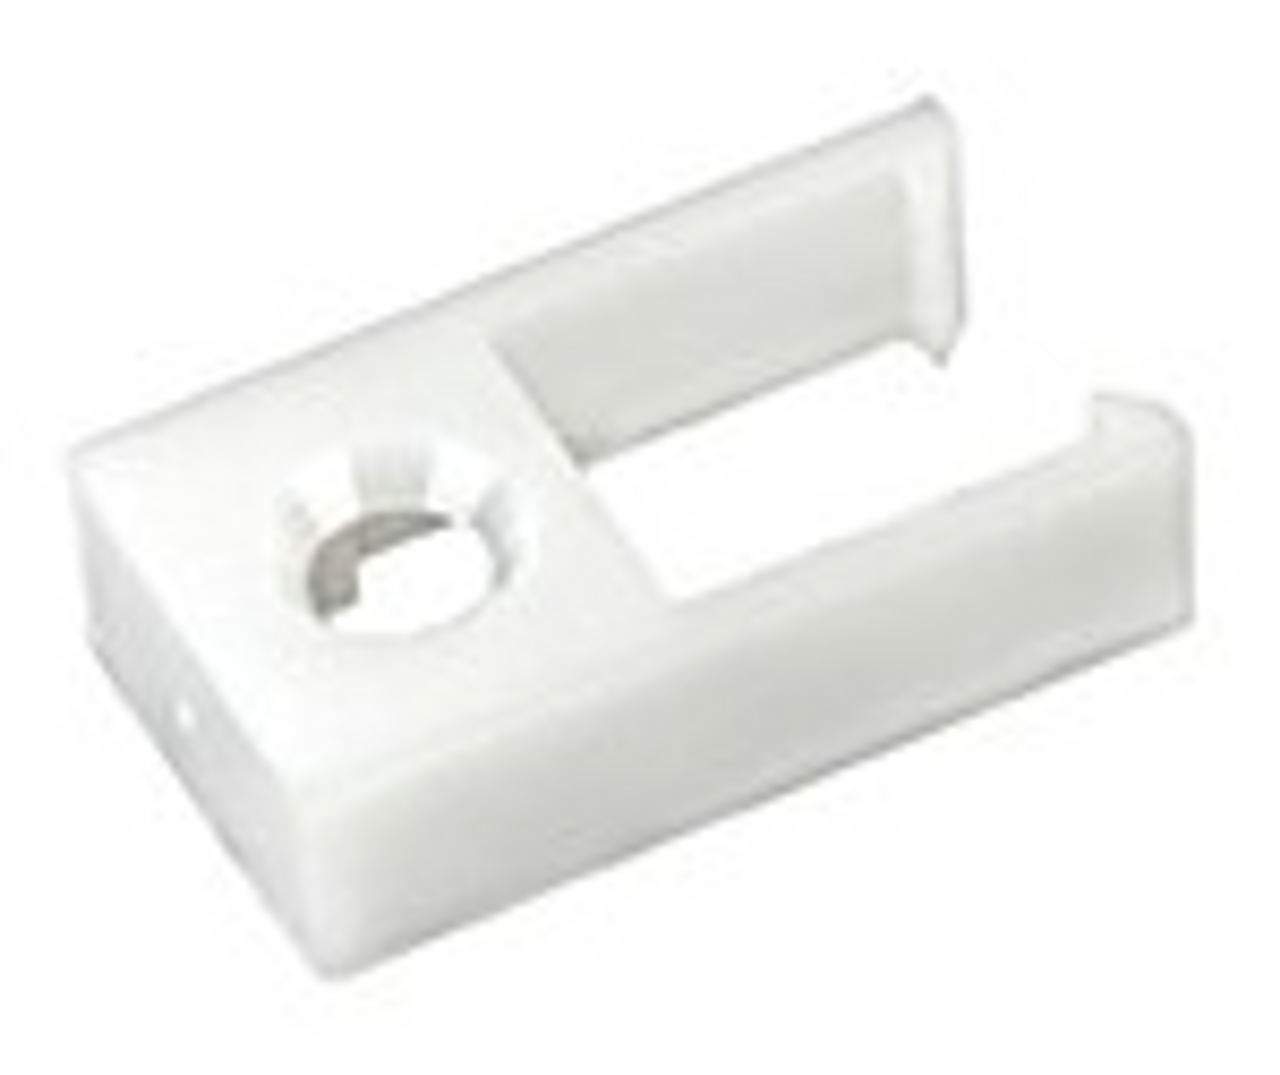 CURTAIN TRACK END STOP- TYPE D - WHITE (20-1129)